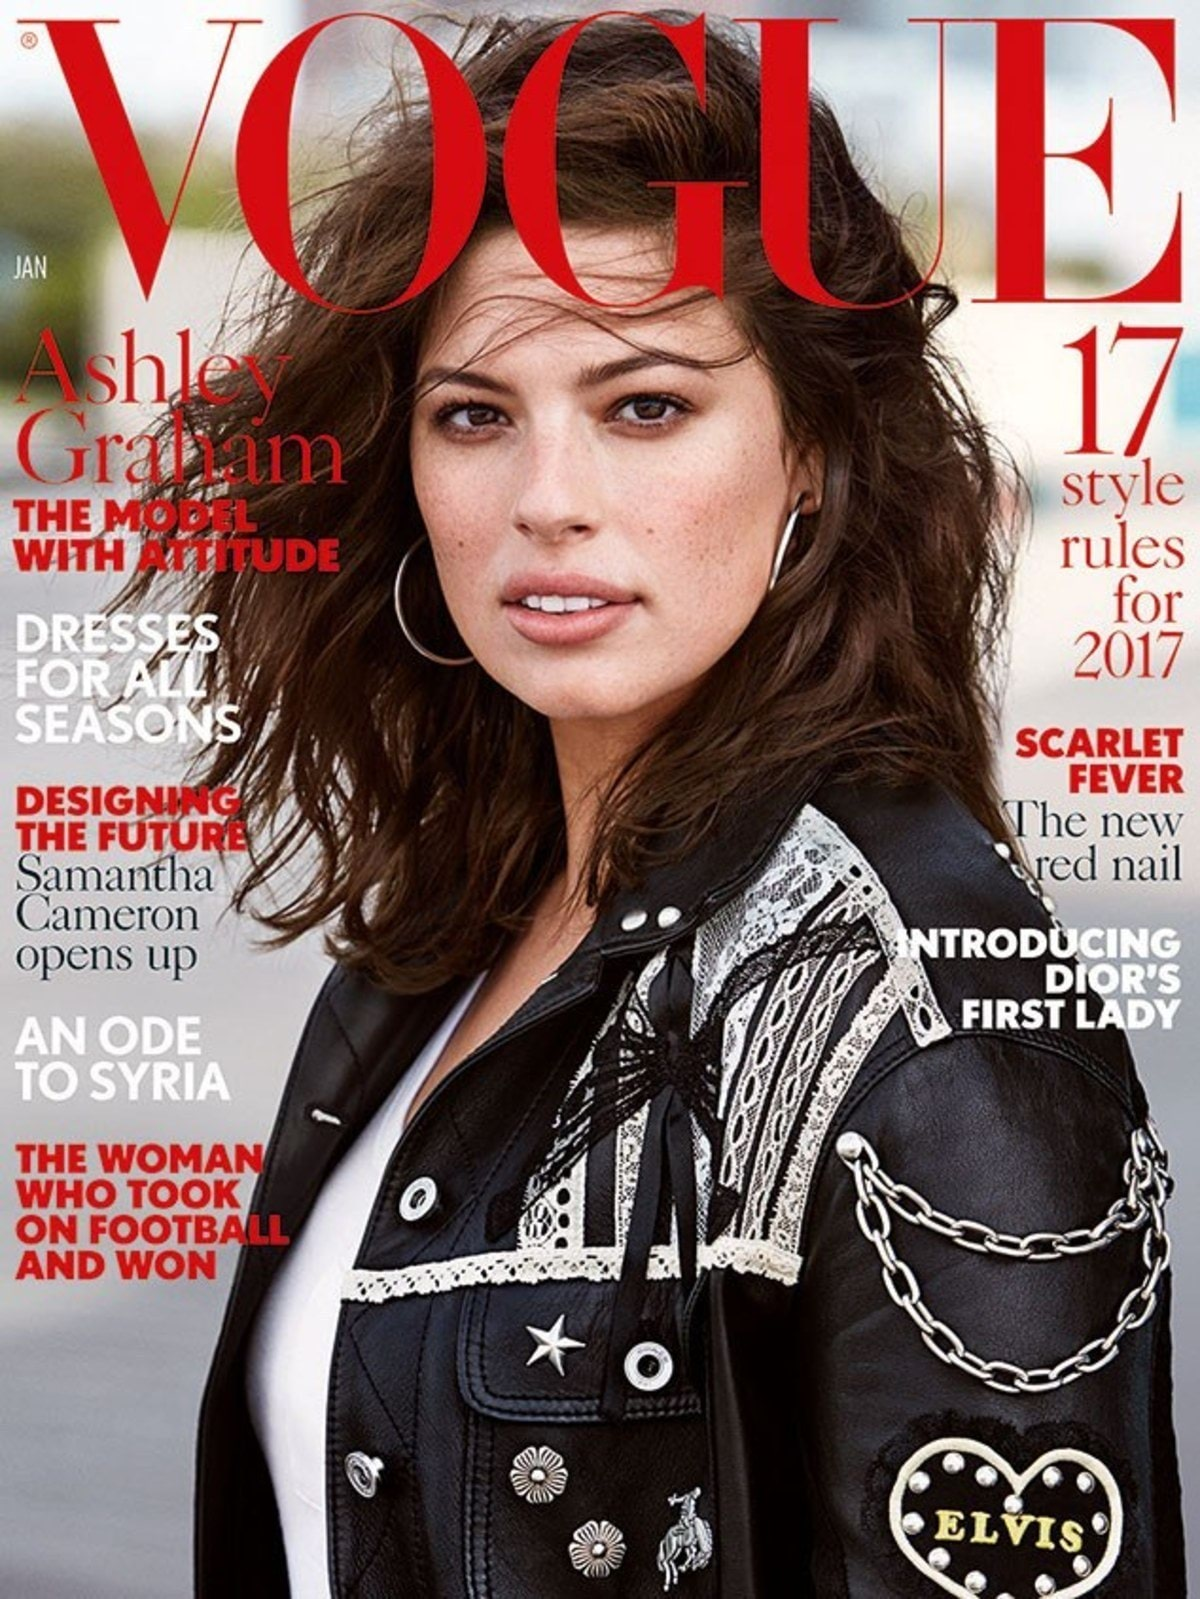 ashley-graham-british-vogue-january-2017